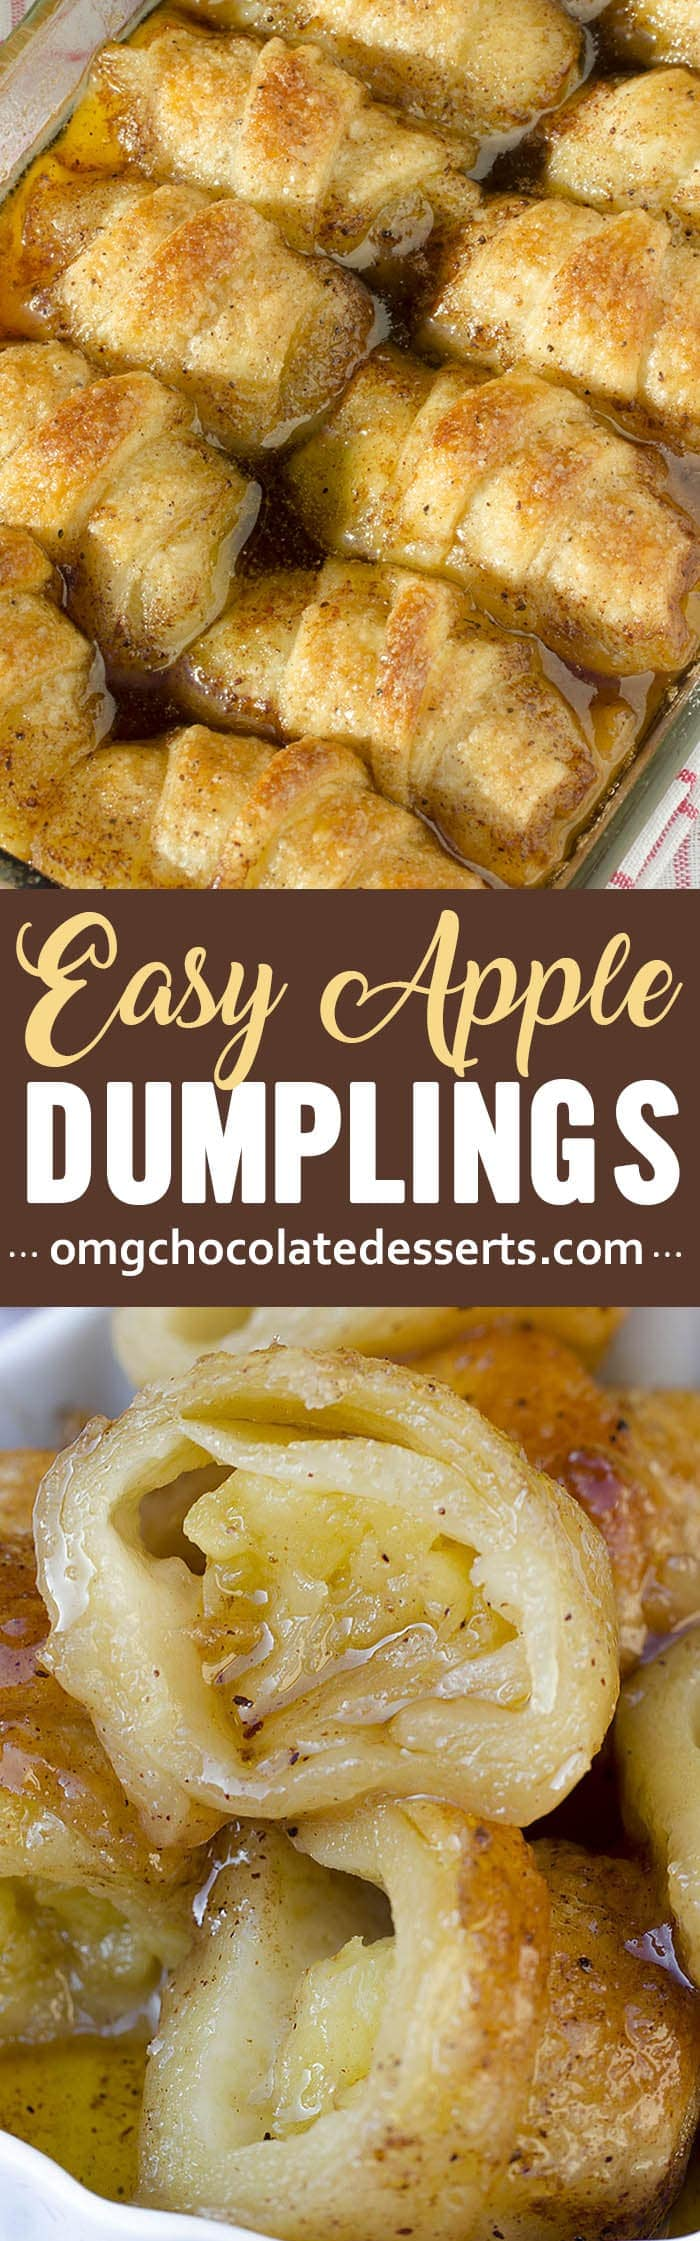 These Easy Country Apple Dumplings are soft and gooey on the bottom, but crispy on top, and they taste like apple pie.